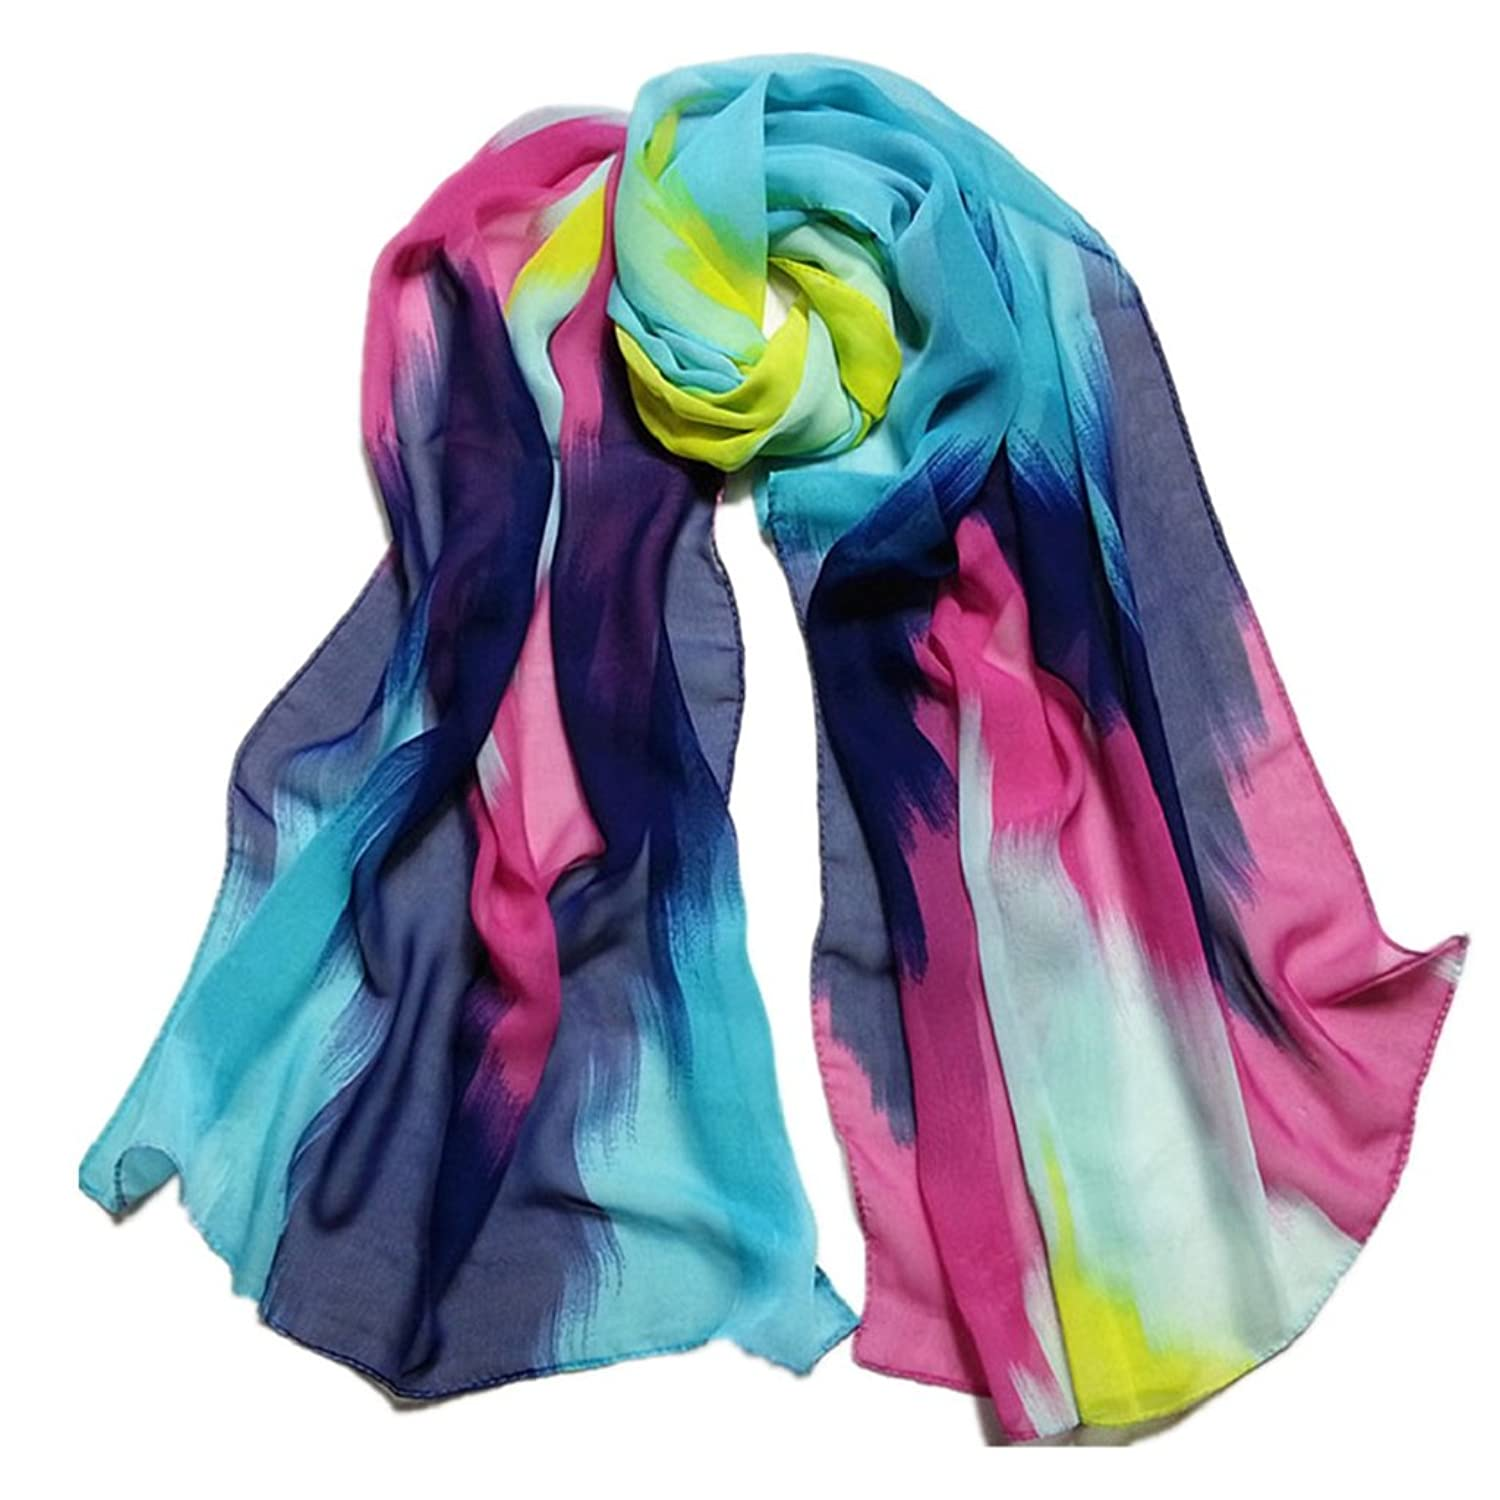 Outtop Womens Fashion Chiffon Soft Shawl Scarf [ Blending ]